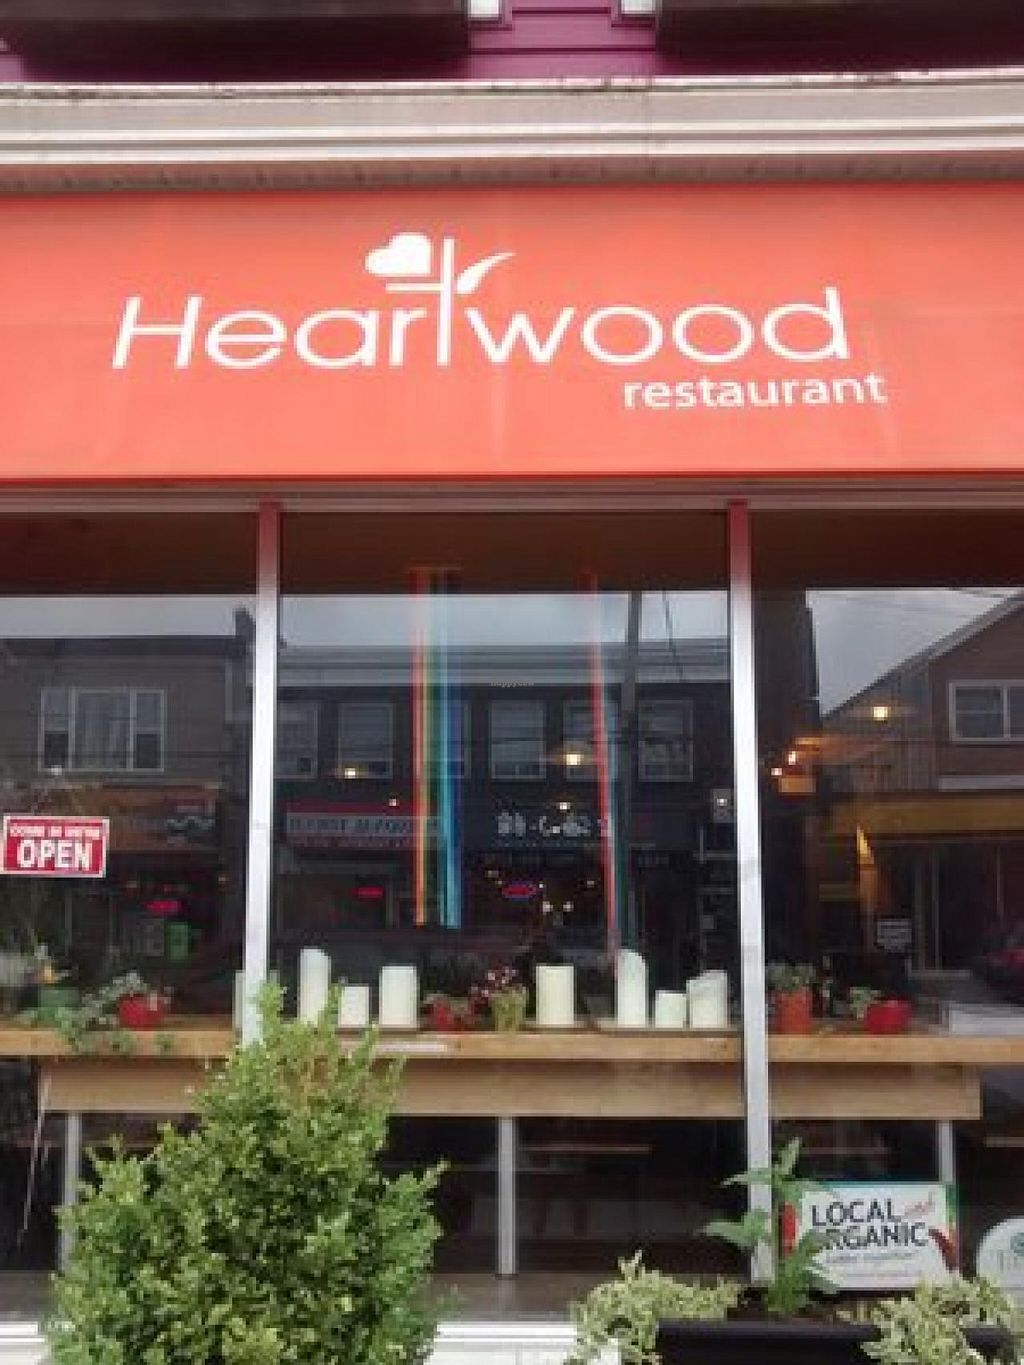 """Photo of Heartwood Bakery & Cafe - Quinpool Rd  by <a href=""""/members/profile/QuothTheRaven"""">QuothTheRaven</a> <br/>Outside <br/> July 24, 2015  - <a href='/contact/abuse/image/1294/110816'>Report</a>"""